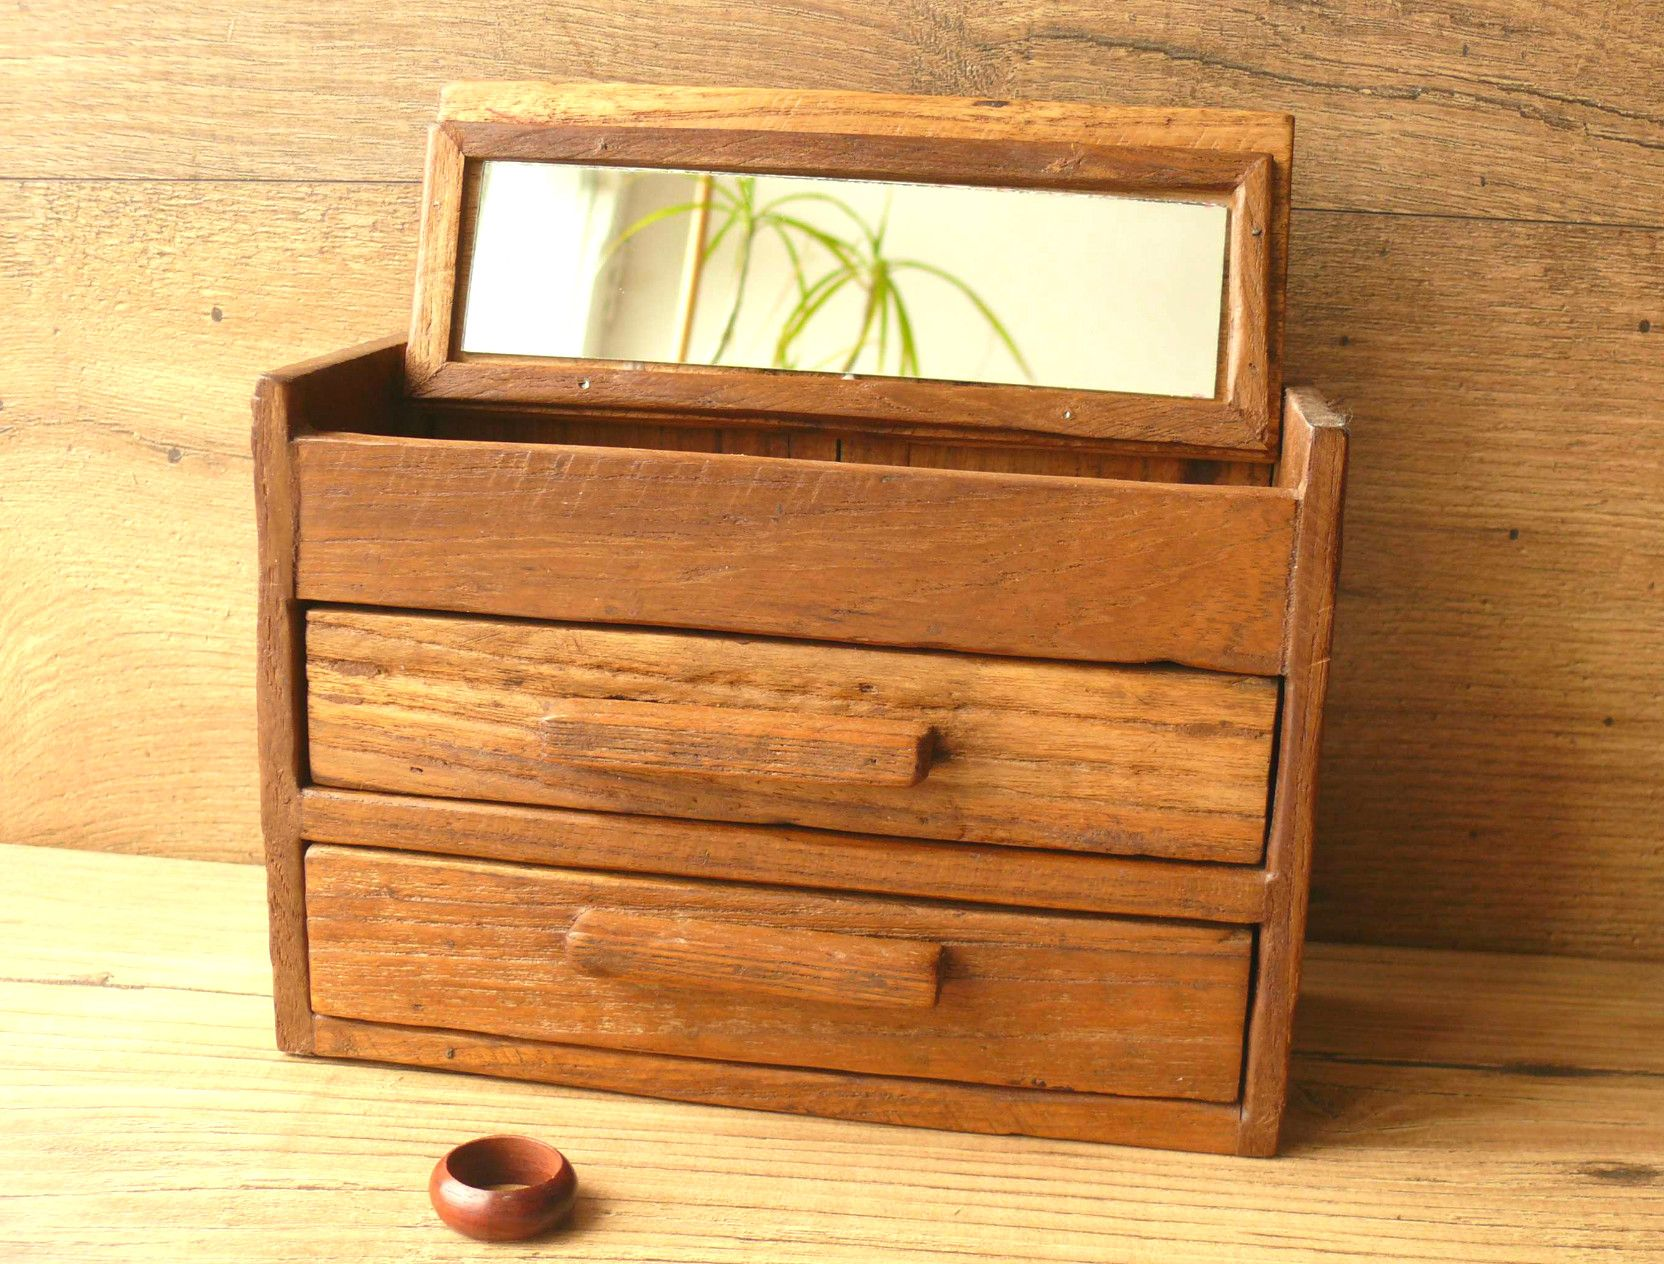 Charming rustic reclaimed teak jewellery boxes The beauty is in